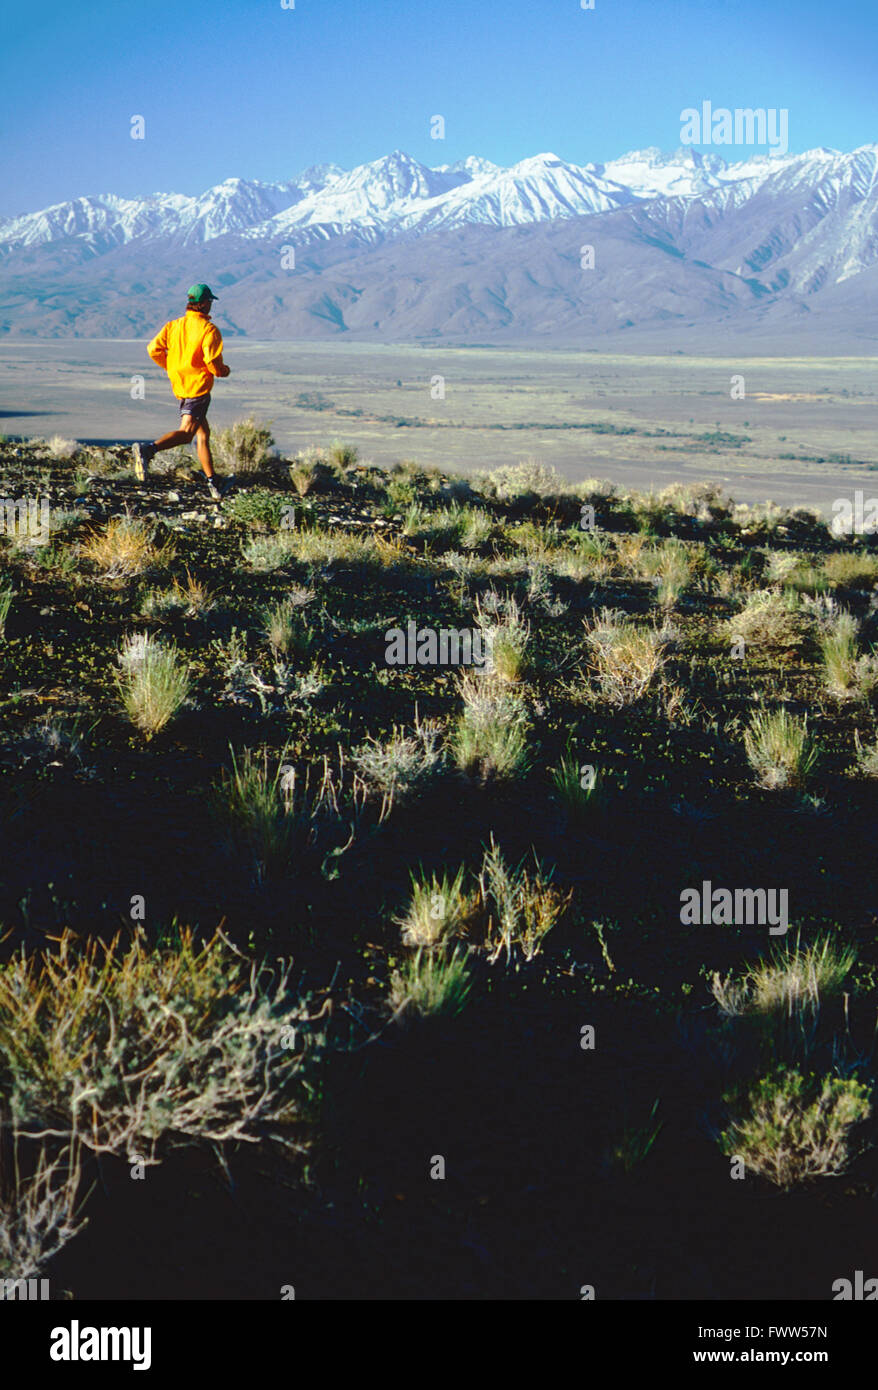 Fit young male athlete trail runner in Sierra Nevada, California, foothills - Stock Image